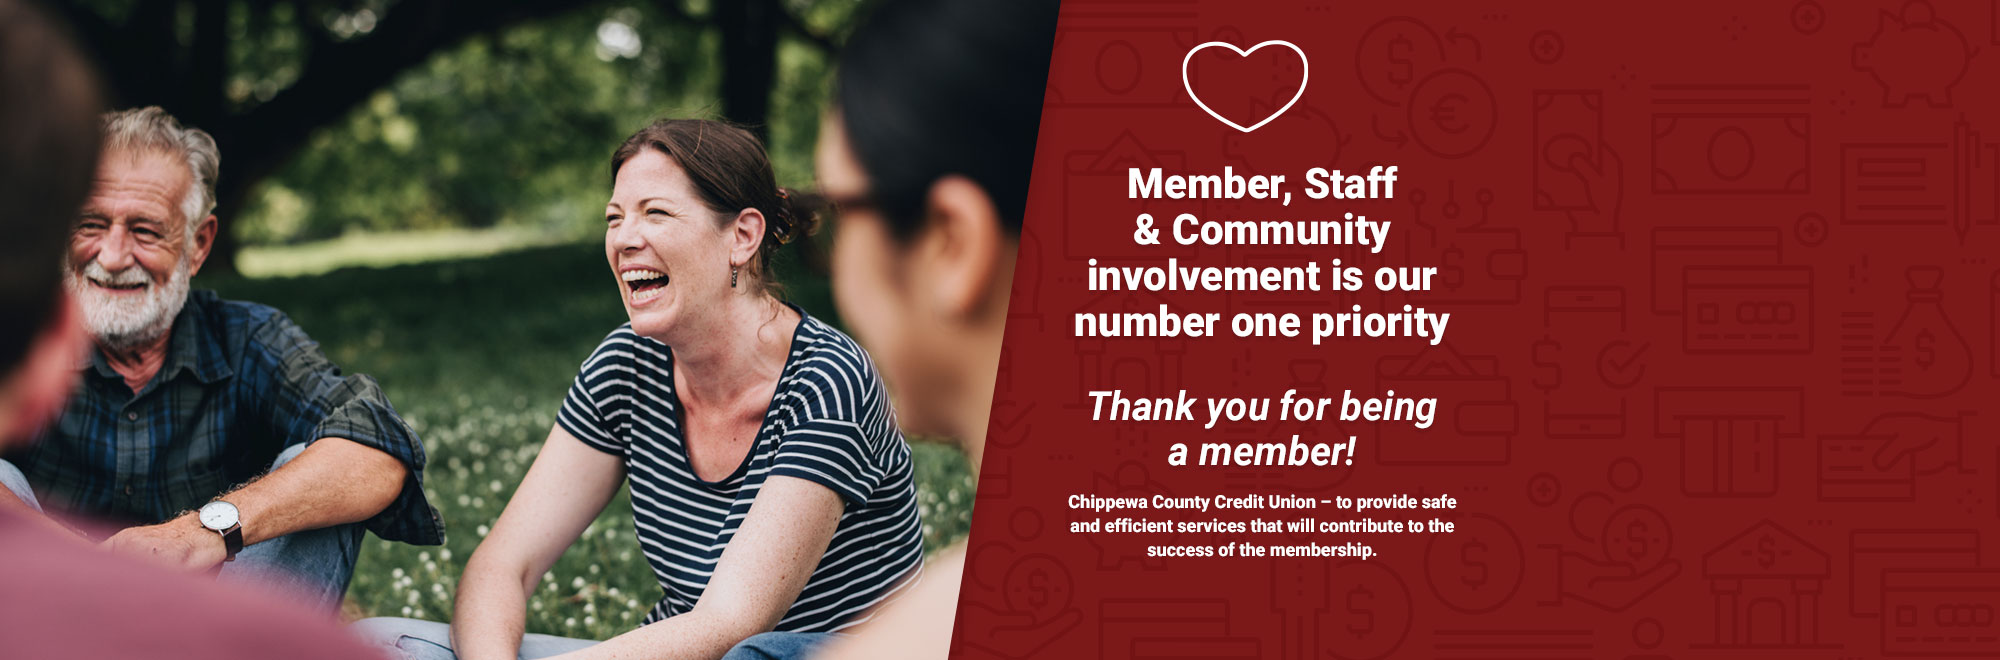 Member, staff & community involvement is our number one priority